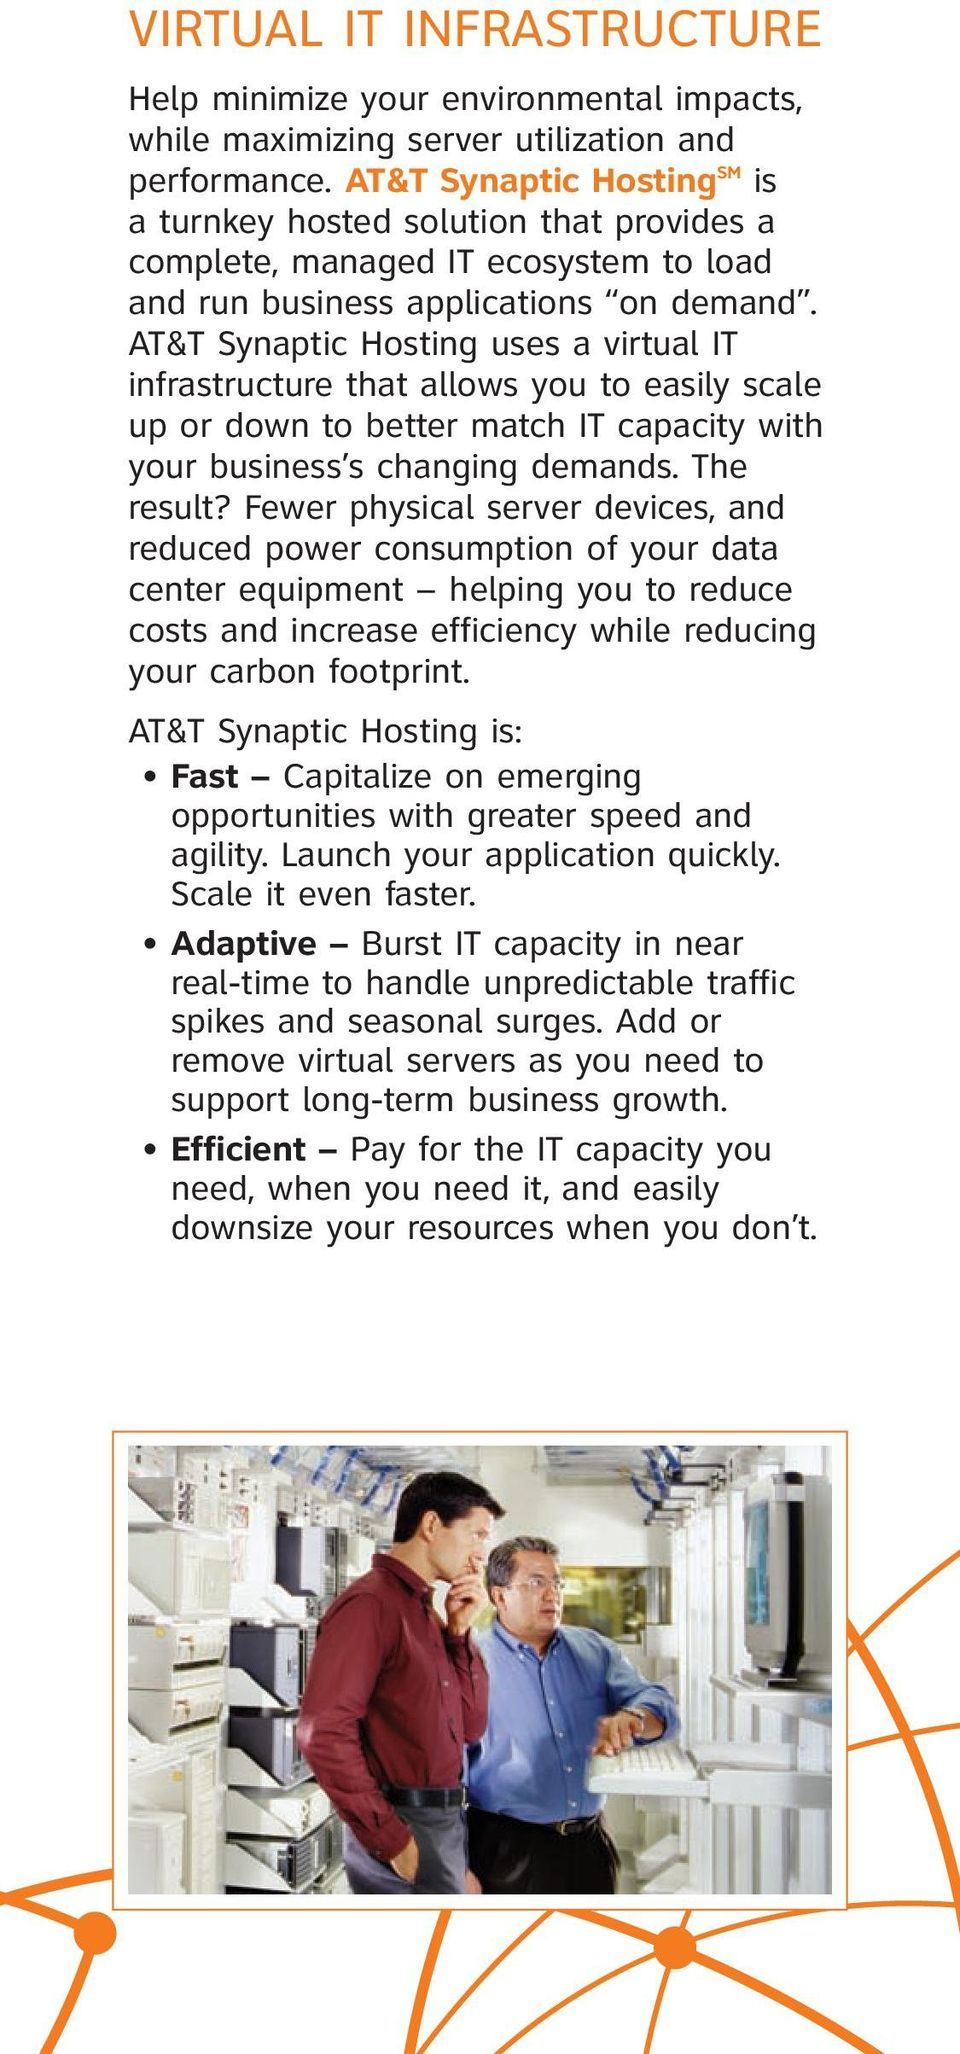 AT&T Synaptic Hosting uses a virtual IT infrastructure that allows you to easily scale up or down to better match IT capacity with your business s changing demands. The result?